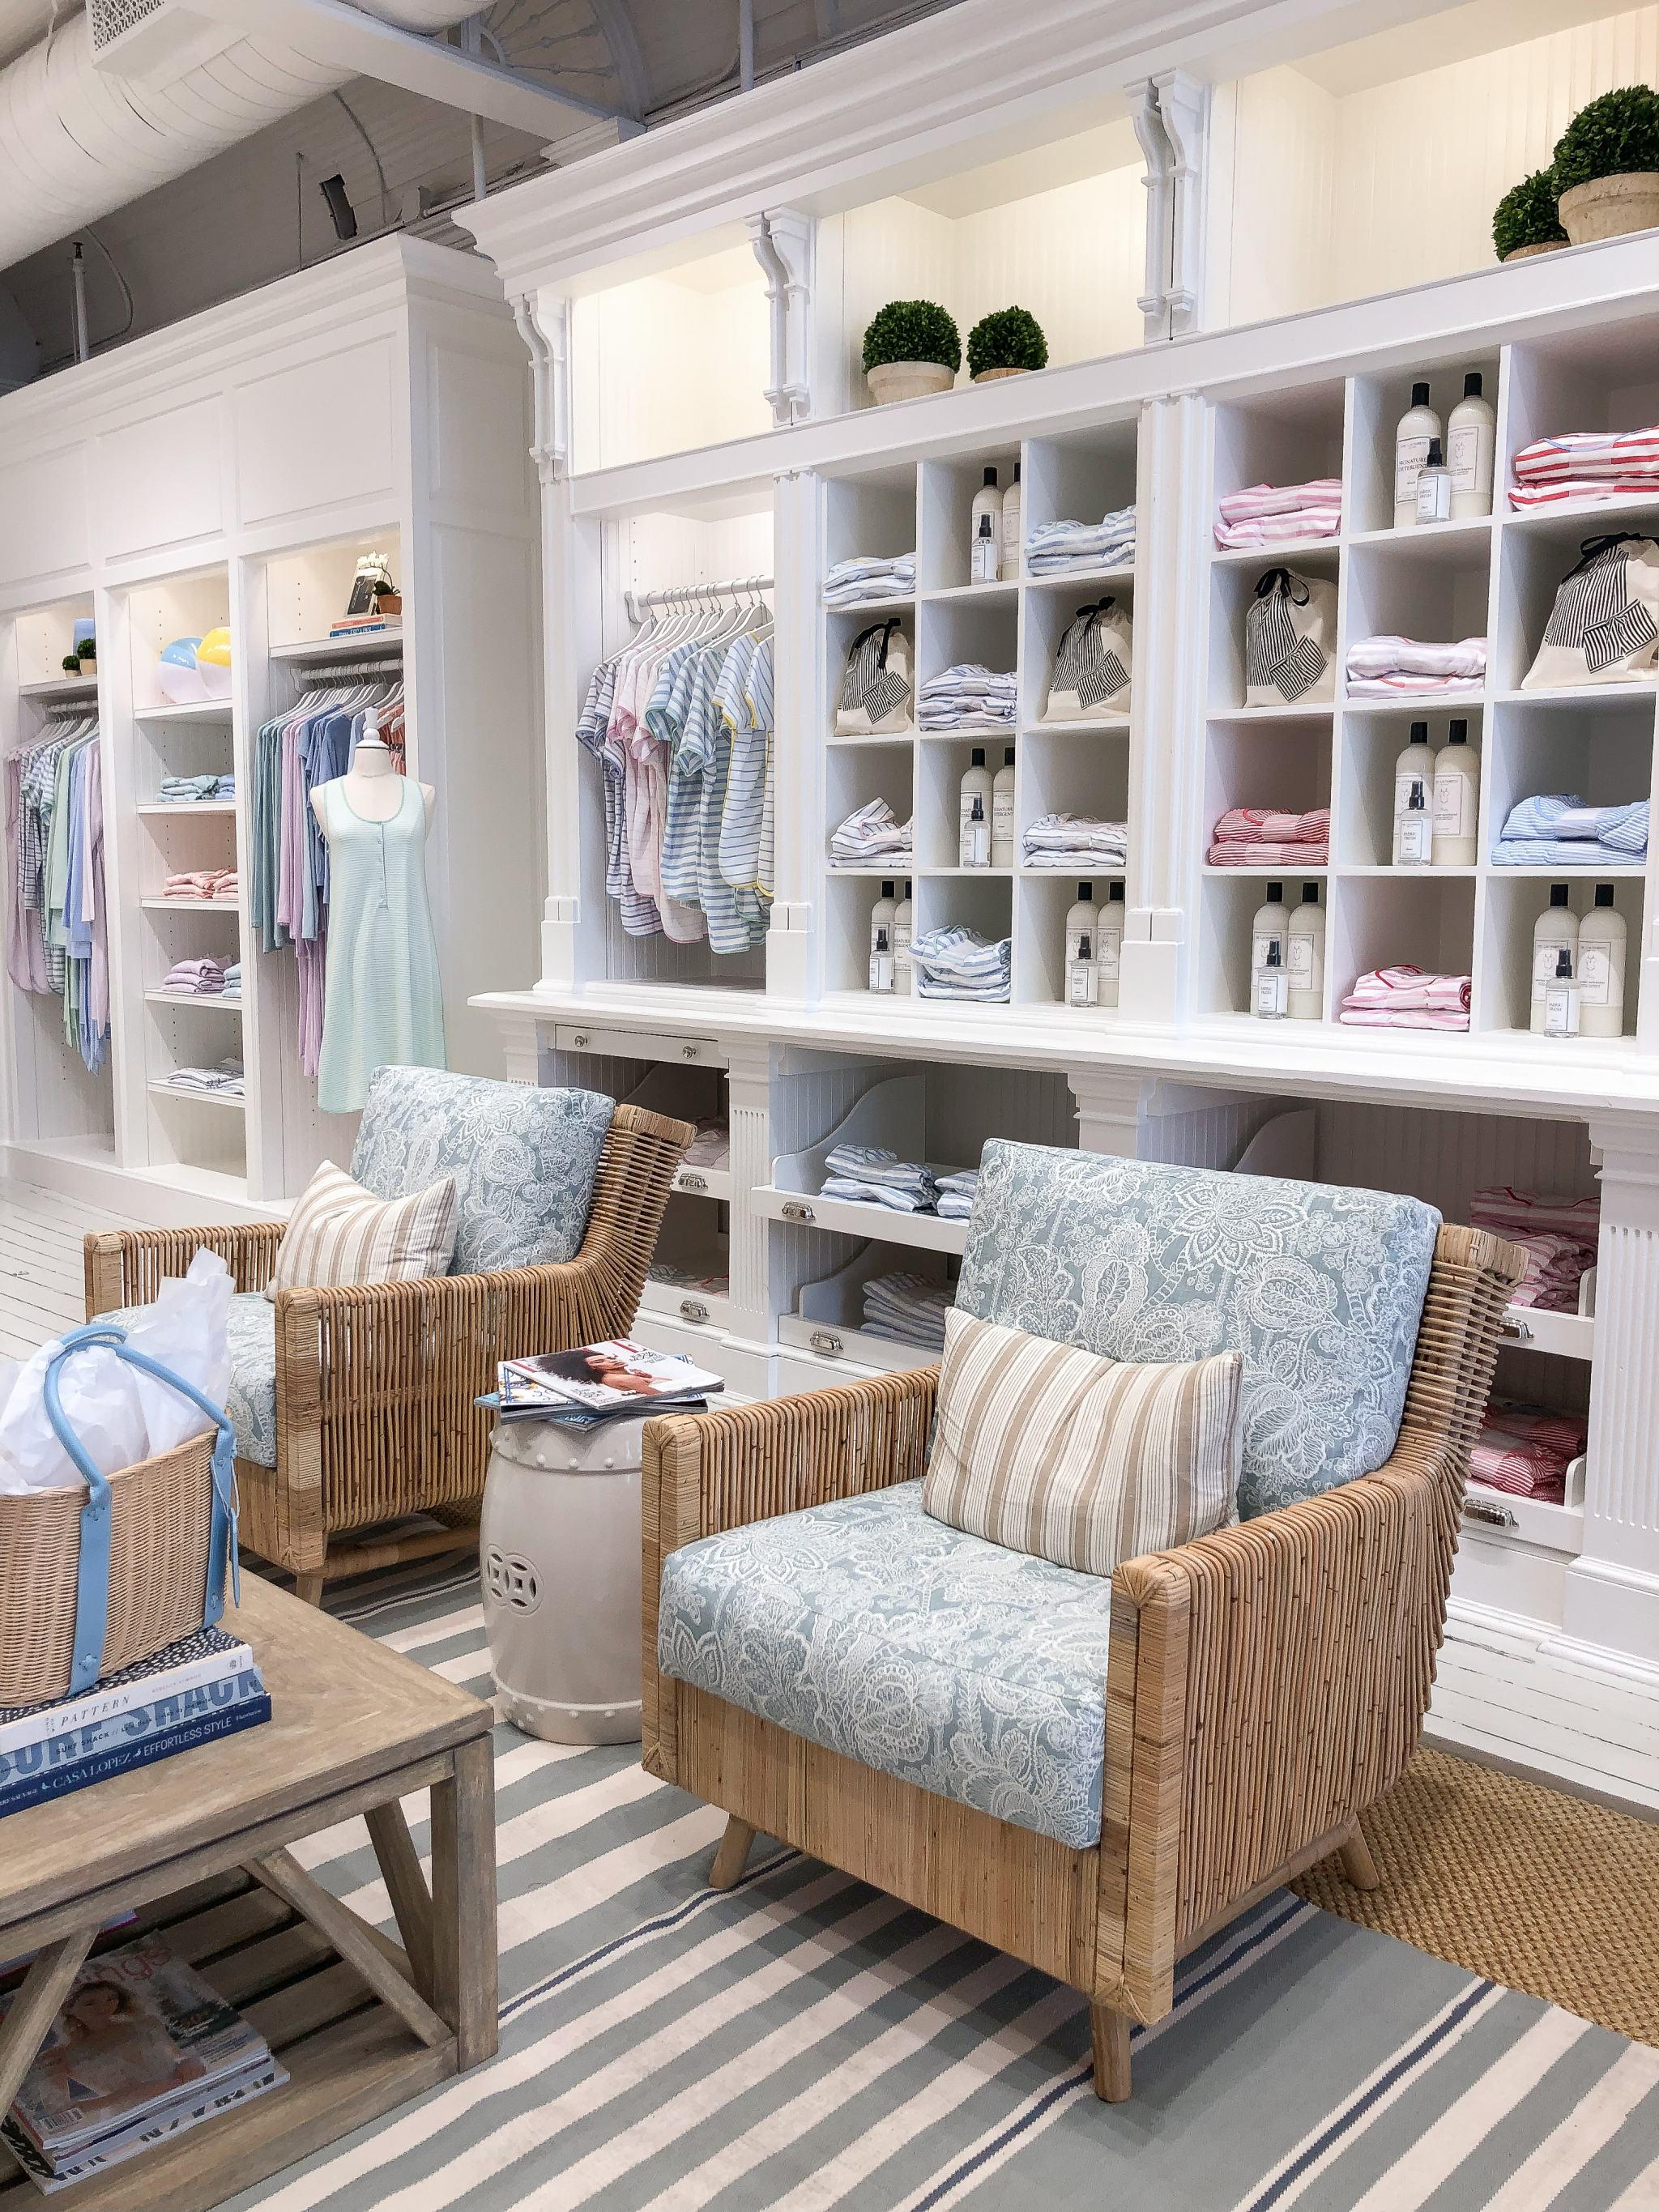 lake pajamas charleston - shopping in charleston - best shops in charleston